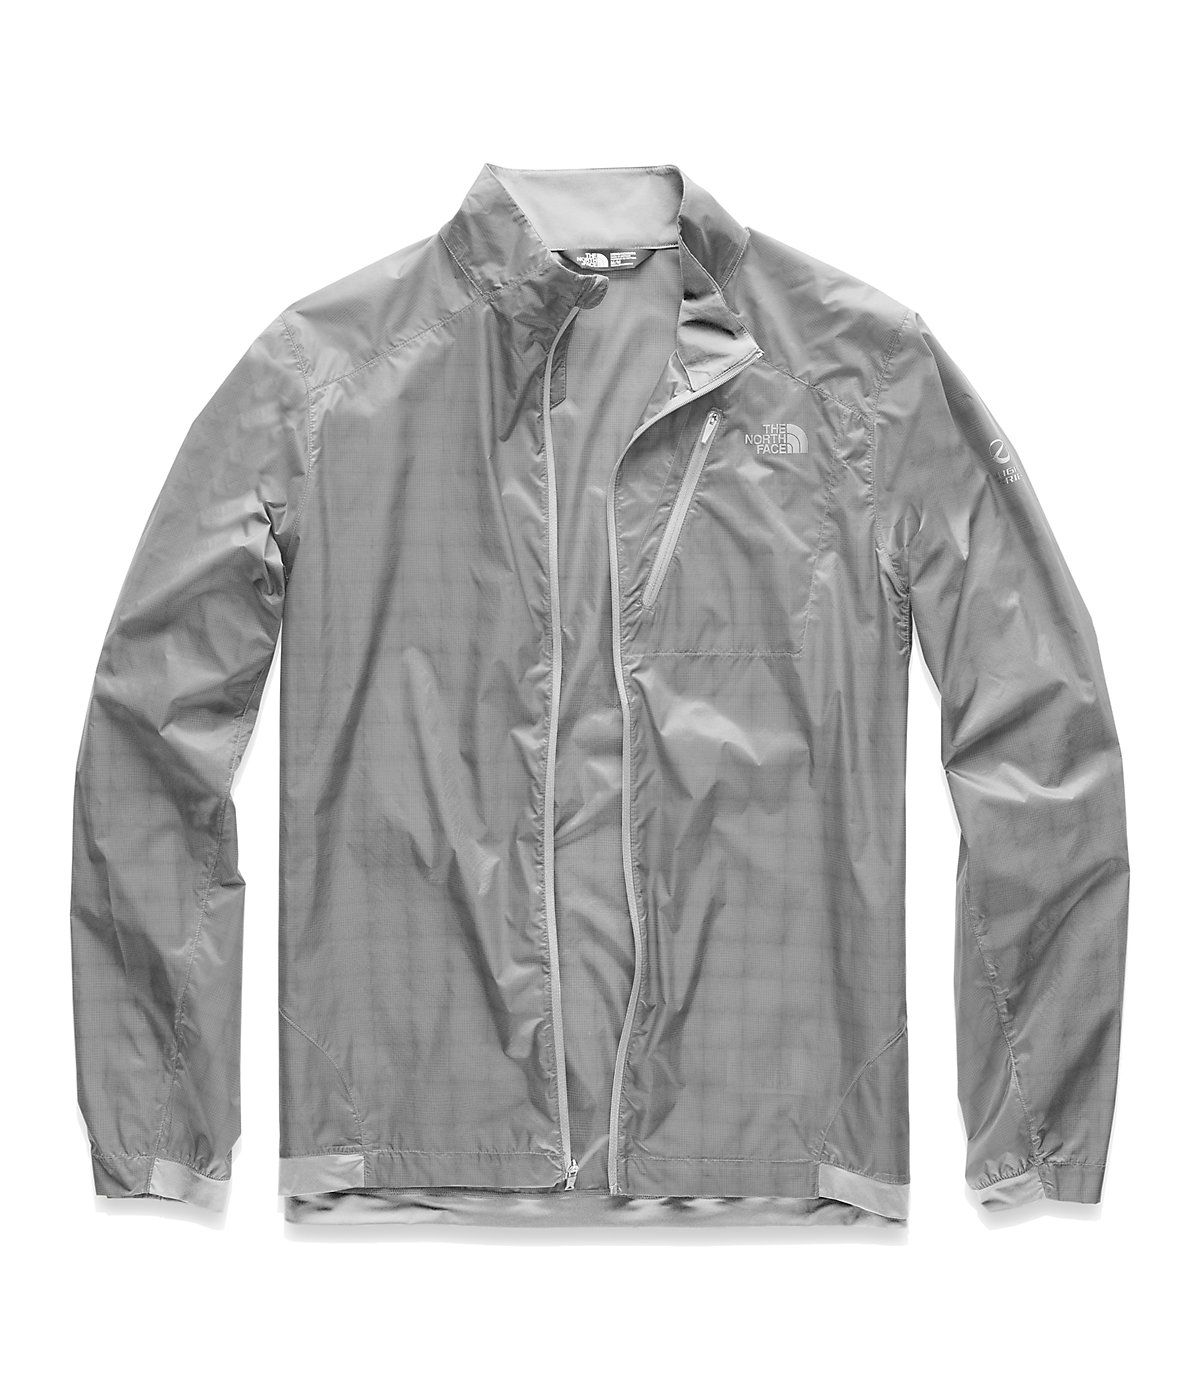 87a2f9d46 The North Face Men's Flight Better Than Naked Jacket in 2019 ...